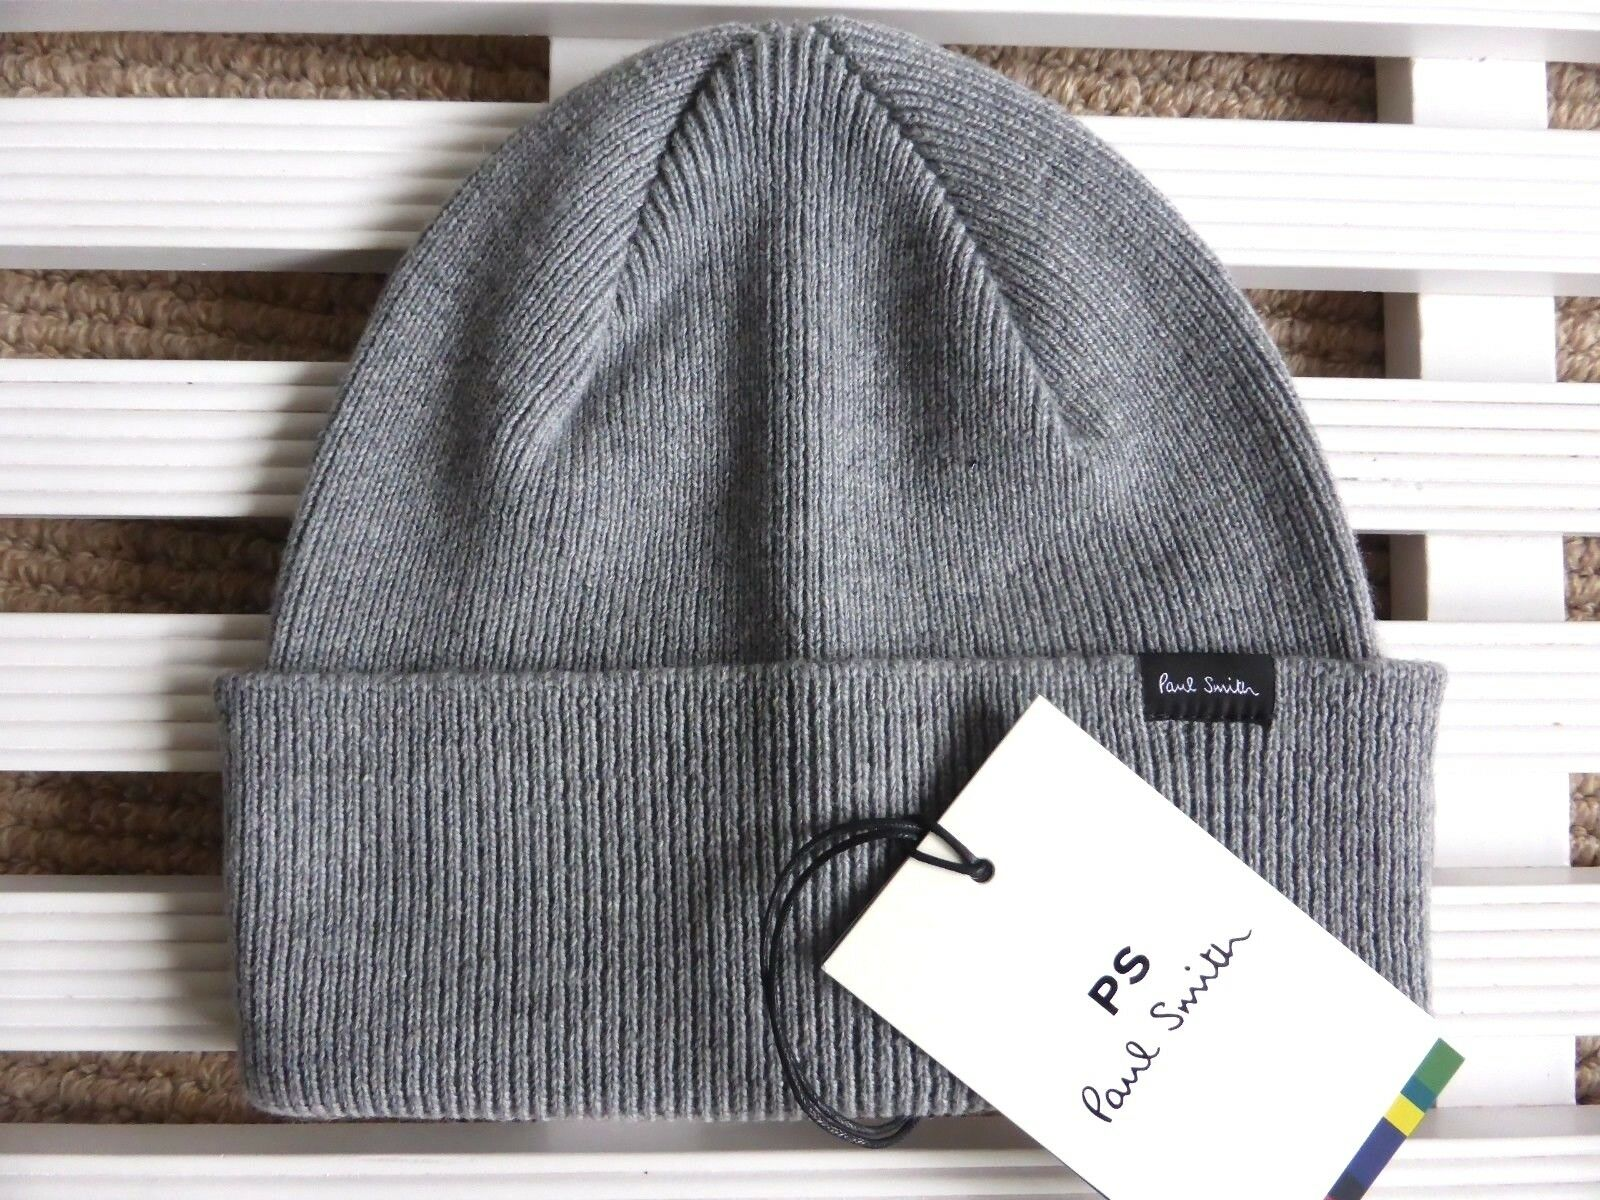 PAUL SMITH Grey  100% Merino Wool Beanie Hat Toque MADE IN SCOTLAND New Tags  clients first reputation first